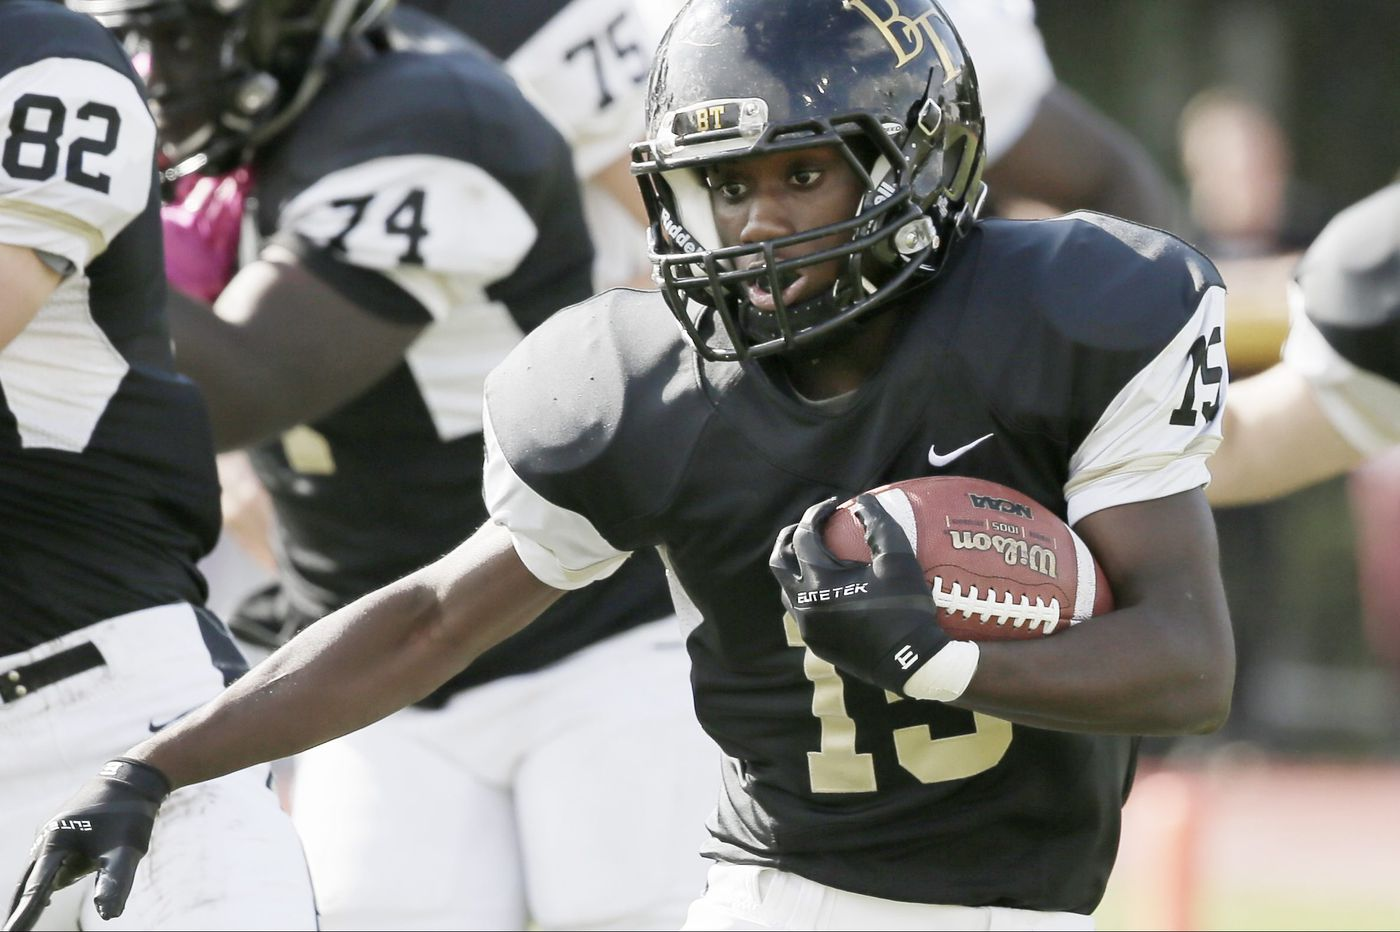 Running back Rodney Vines shows his speed, and toughness, for Burlington Township